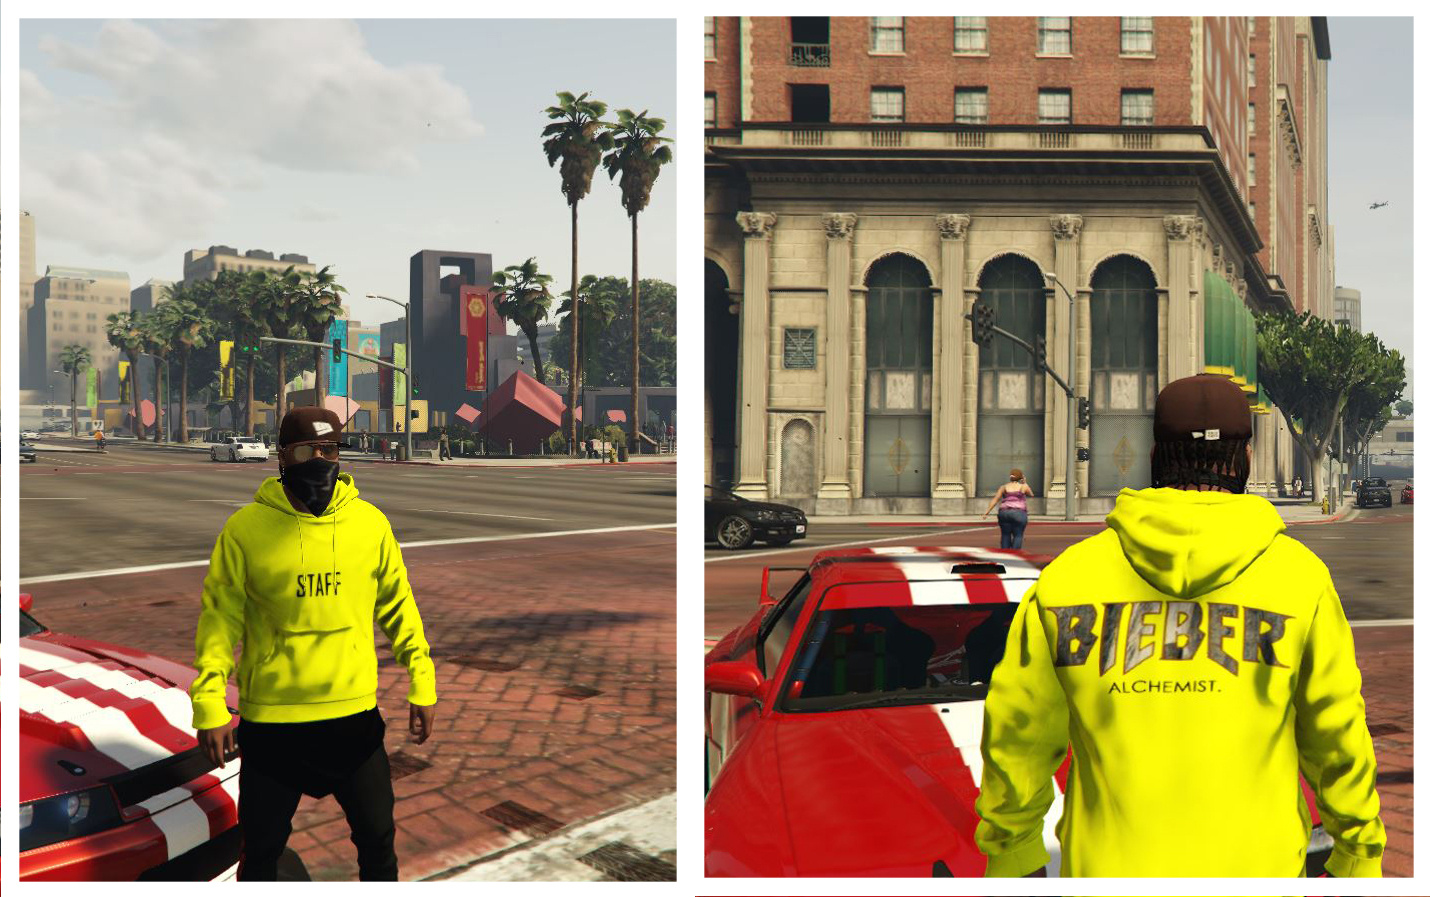 gta liberty city helicopter cheats with Justin Bieber S Purpose Tour Hoodie Pack on Wallpaper besides 28134 Fh 1 Hunter besides  furthermore Gta V Cheats For Ps4 Ps3 moreover Gta Tbogt Cheats.